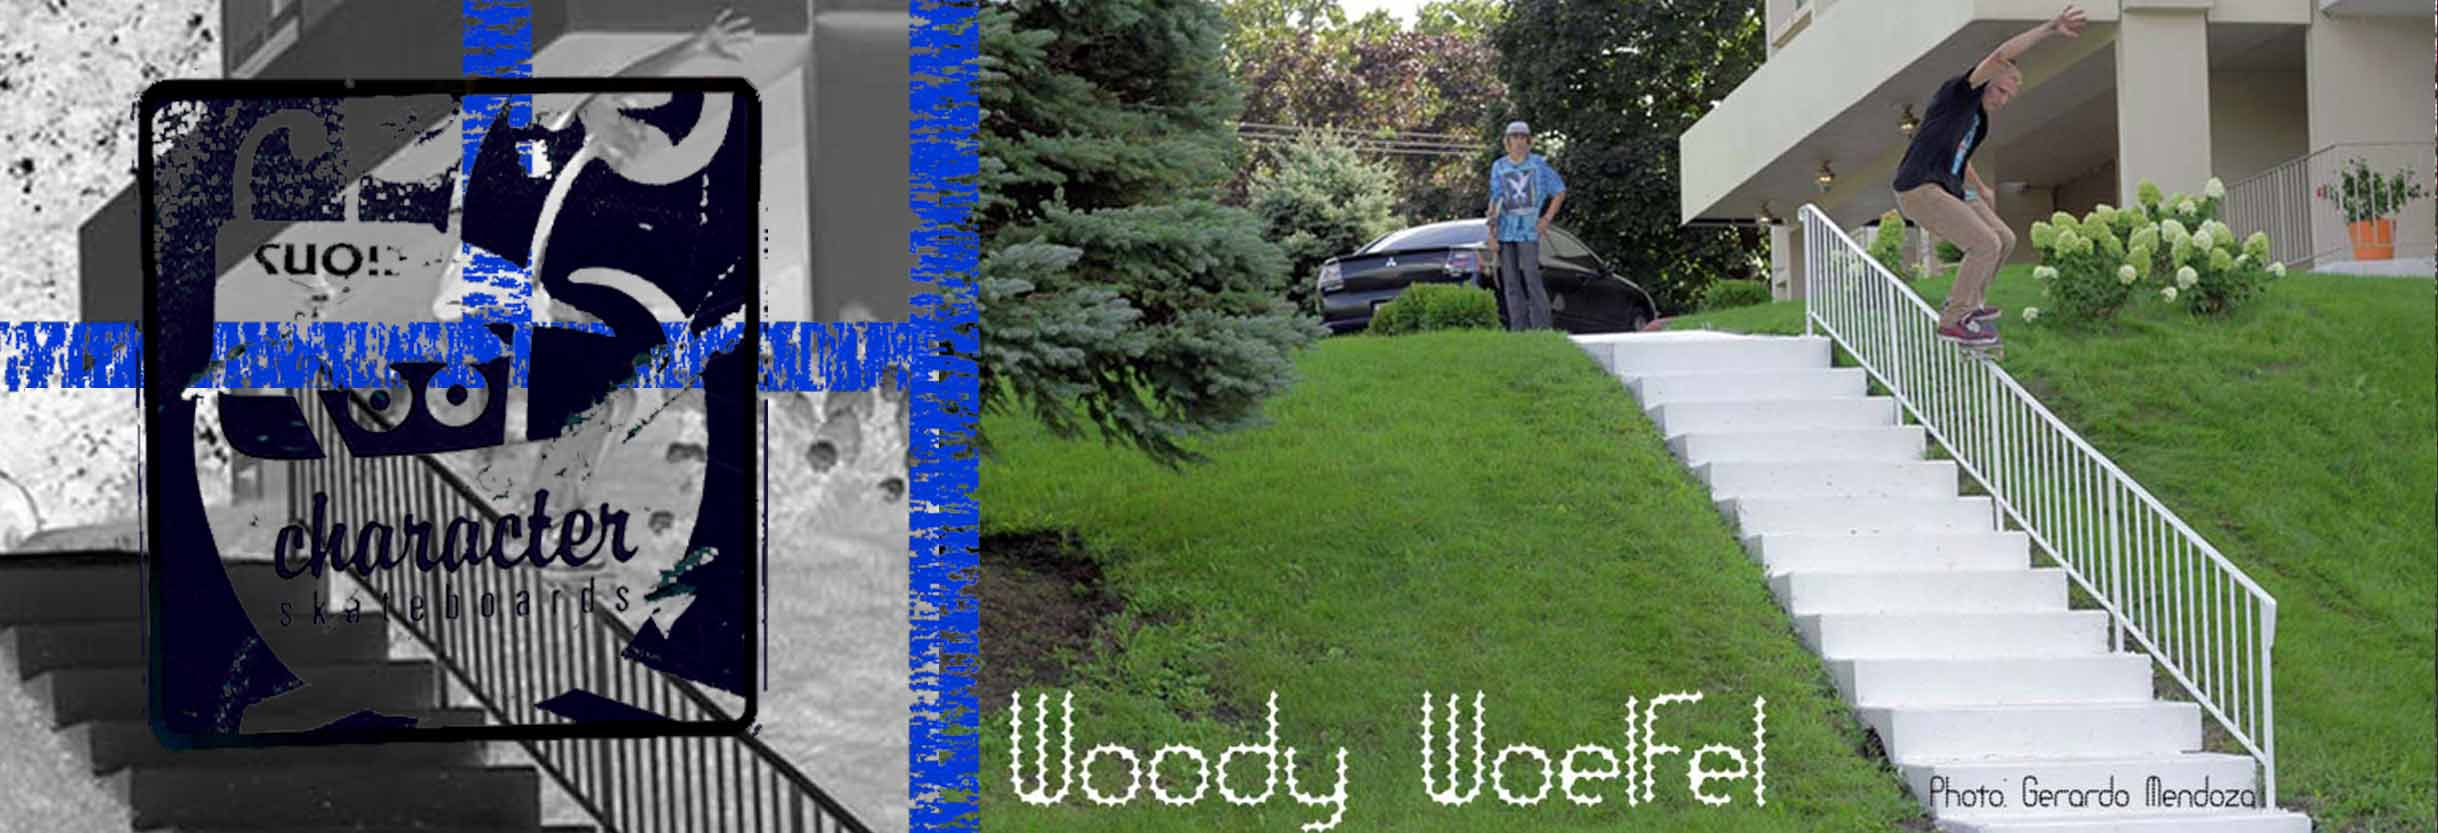 Woody Woelfel - Chicago Skateboarding by Character Skateboards